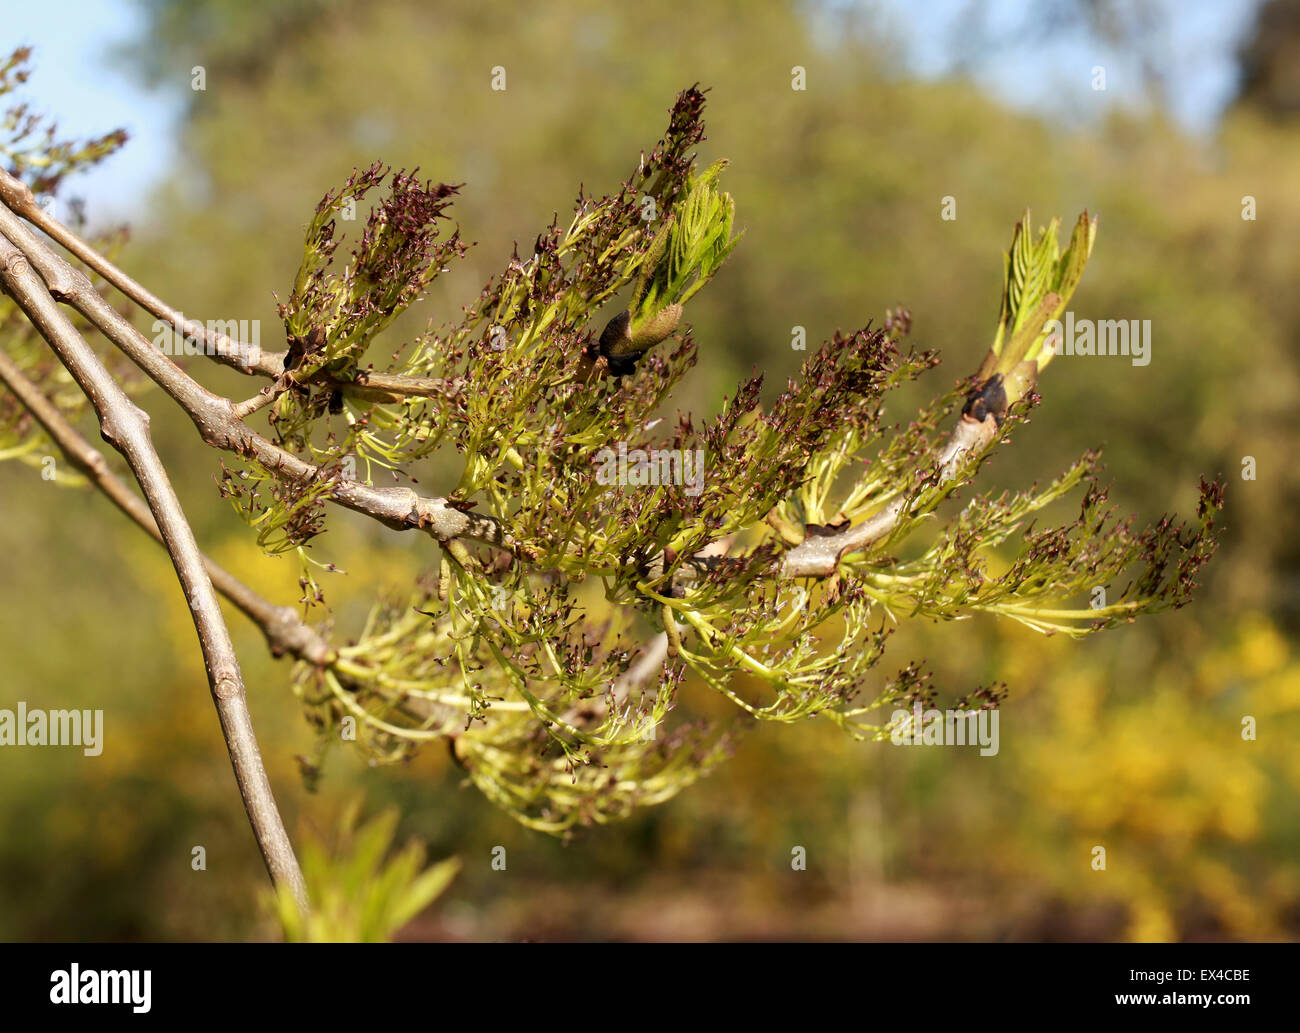 Buds and Flowers of the Wentworth Weeping Ash, Fraxinus exelsior 'Pendula Wentworthii', Oleaceae. - Stock Image